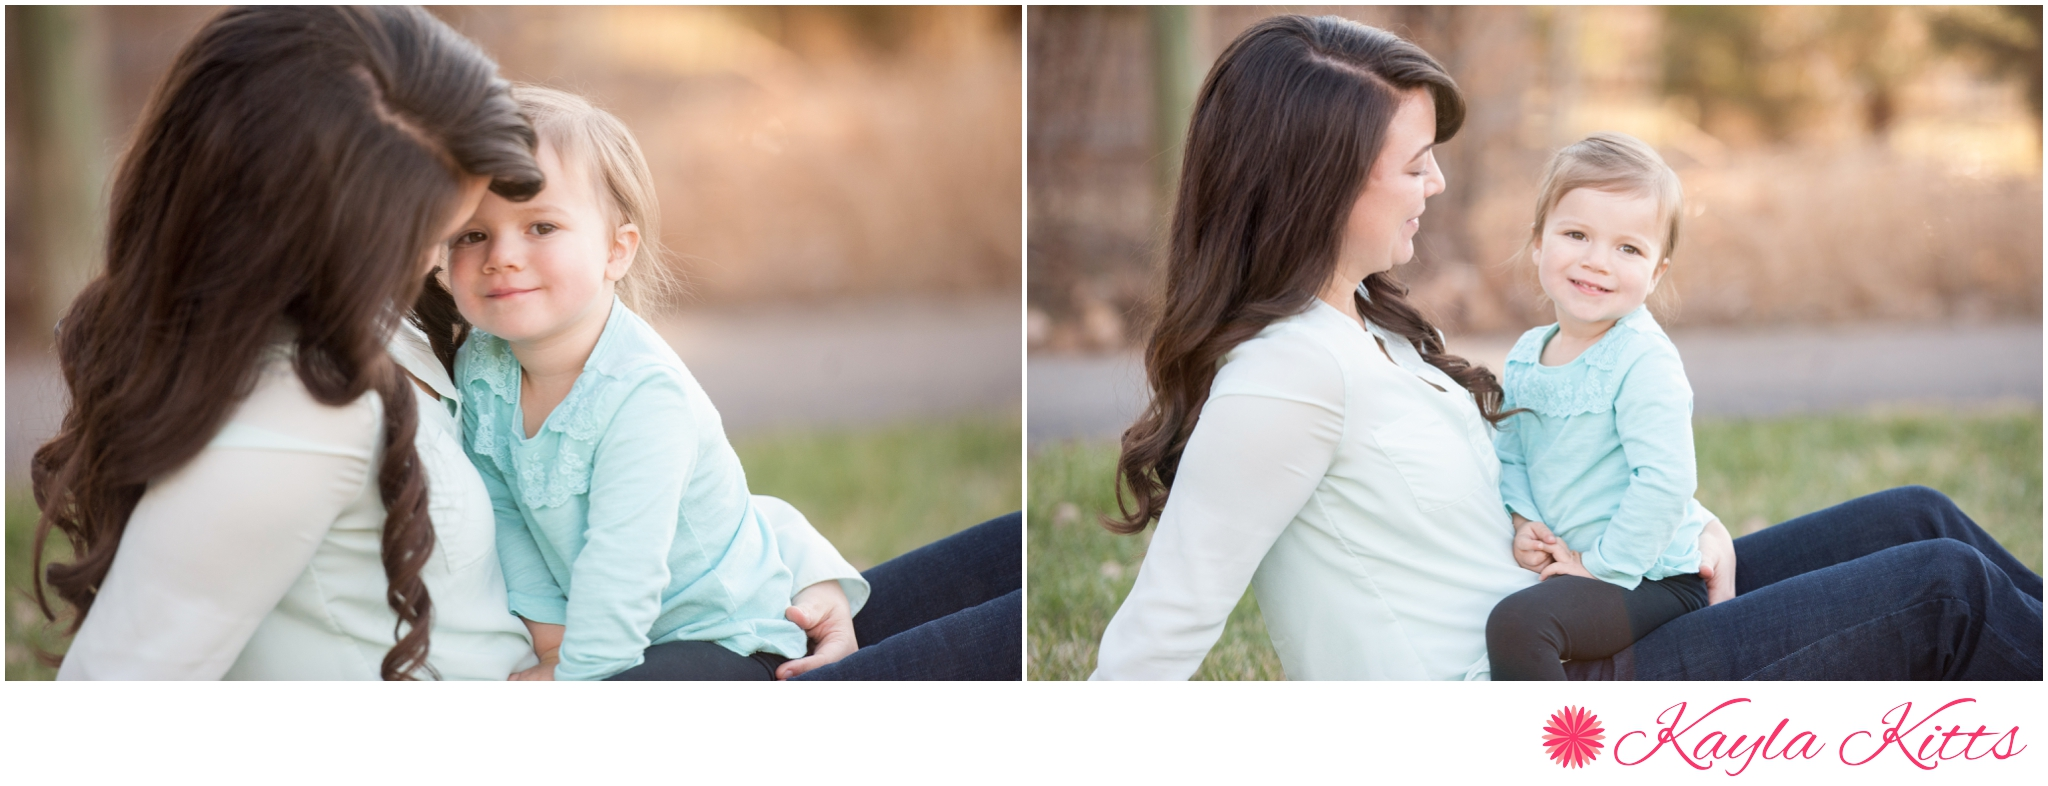 kayla kitts photography - baca family 2014-028.jpg